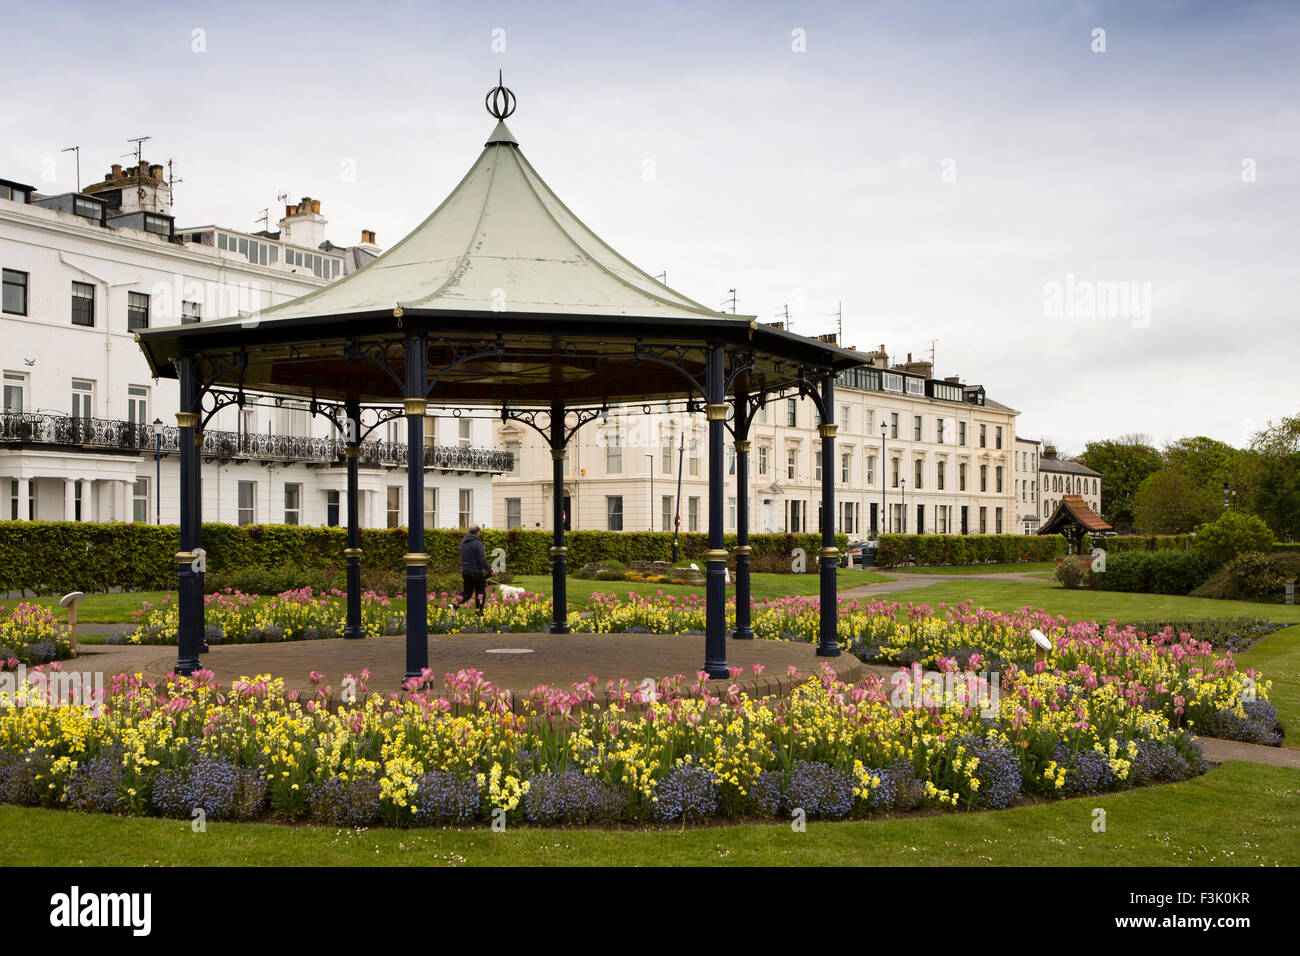 UK, England, Yorkshire East Riding, Filey, Crescent Garden, bandstand and floral planting below seafront houses - Stock Image